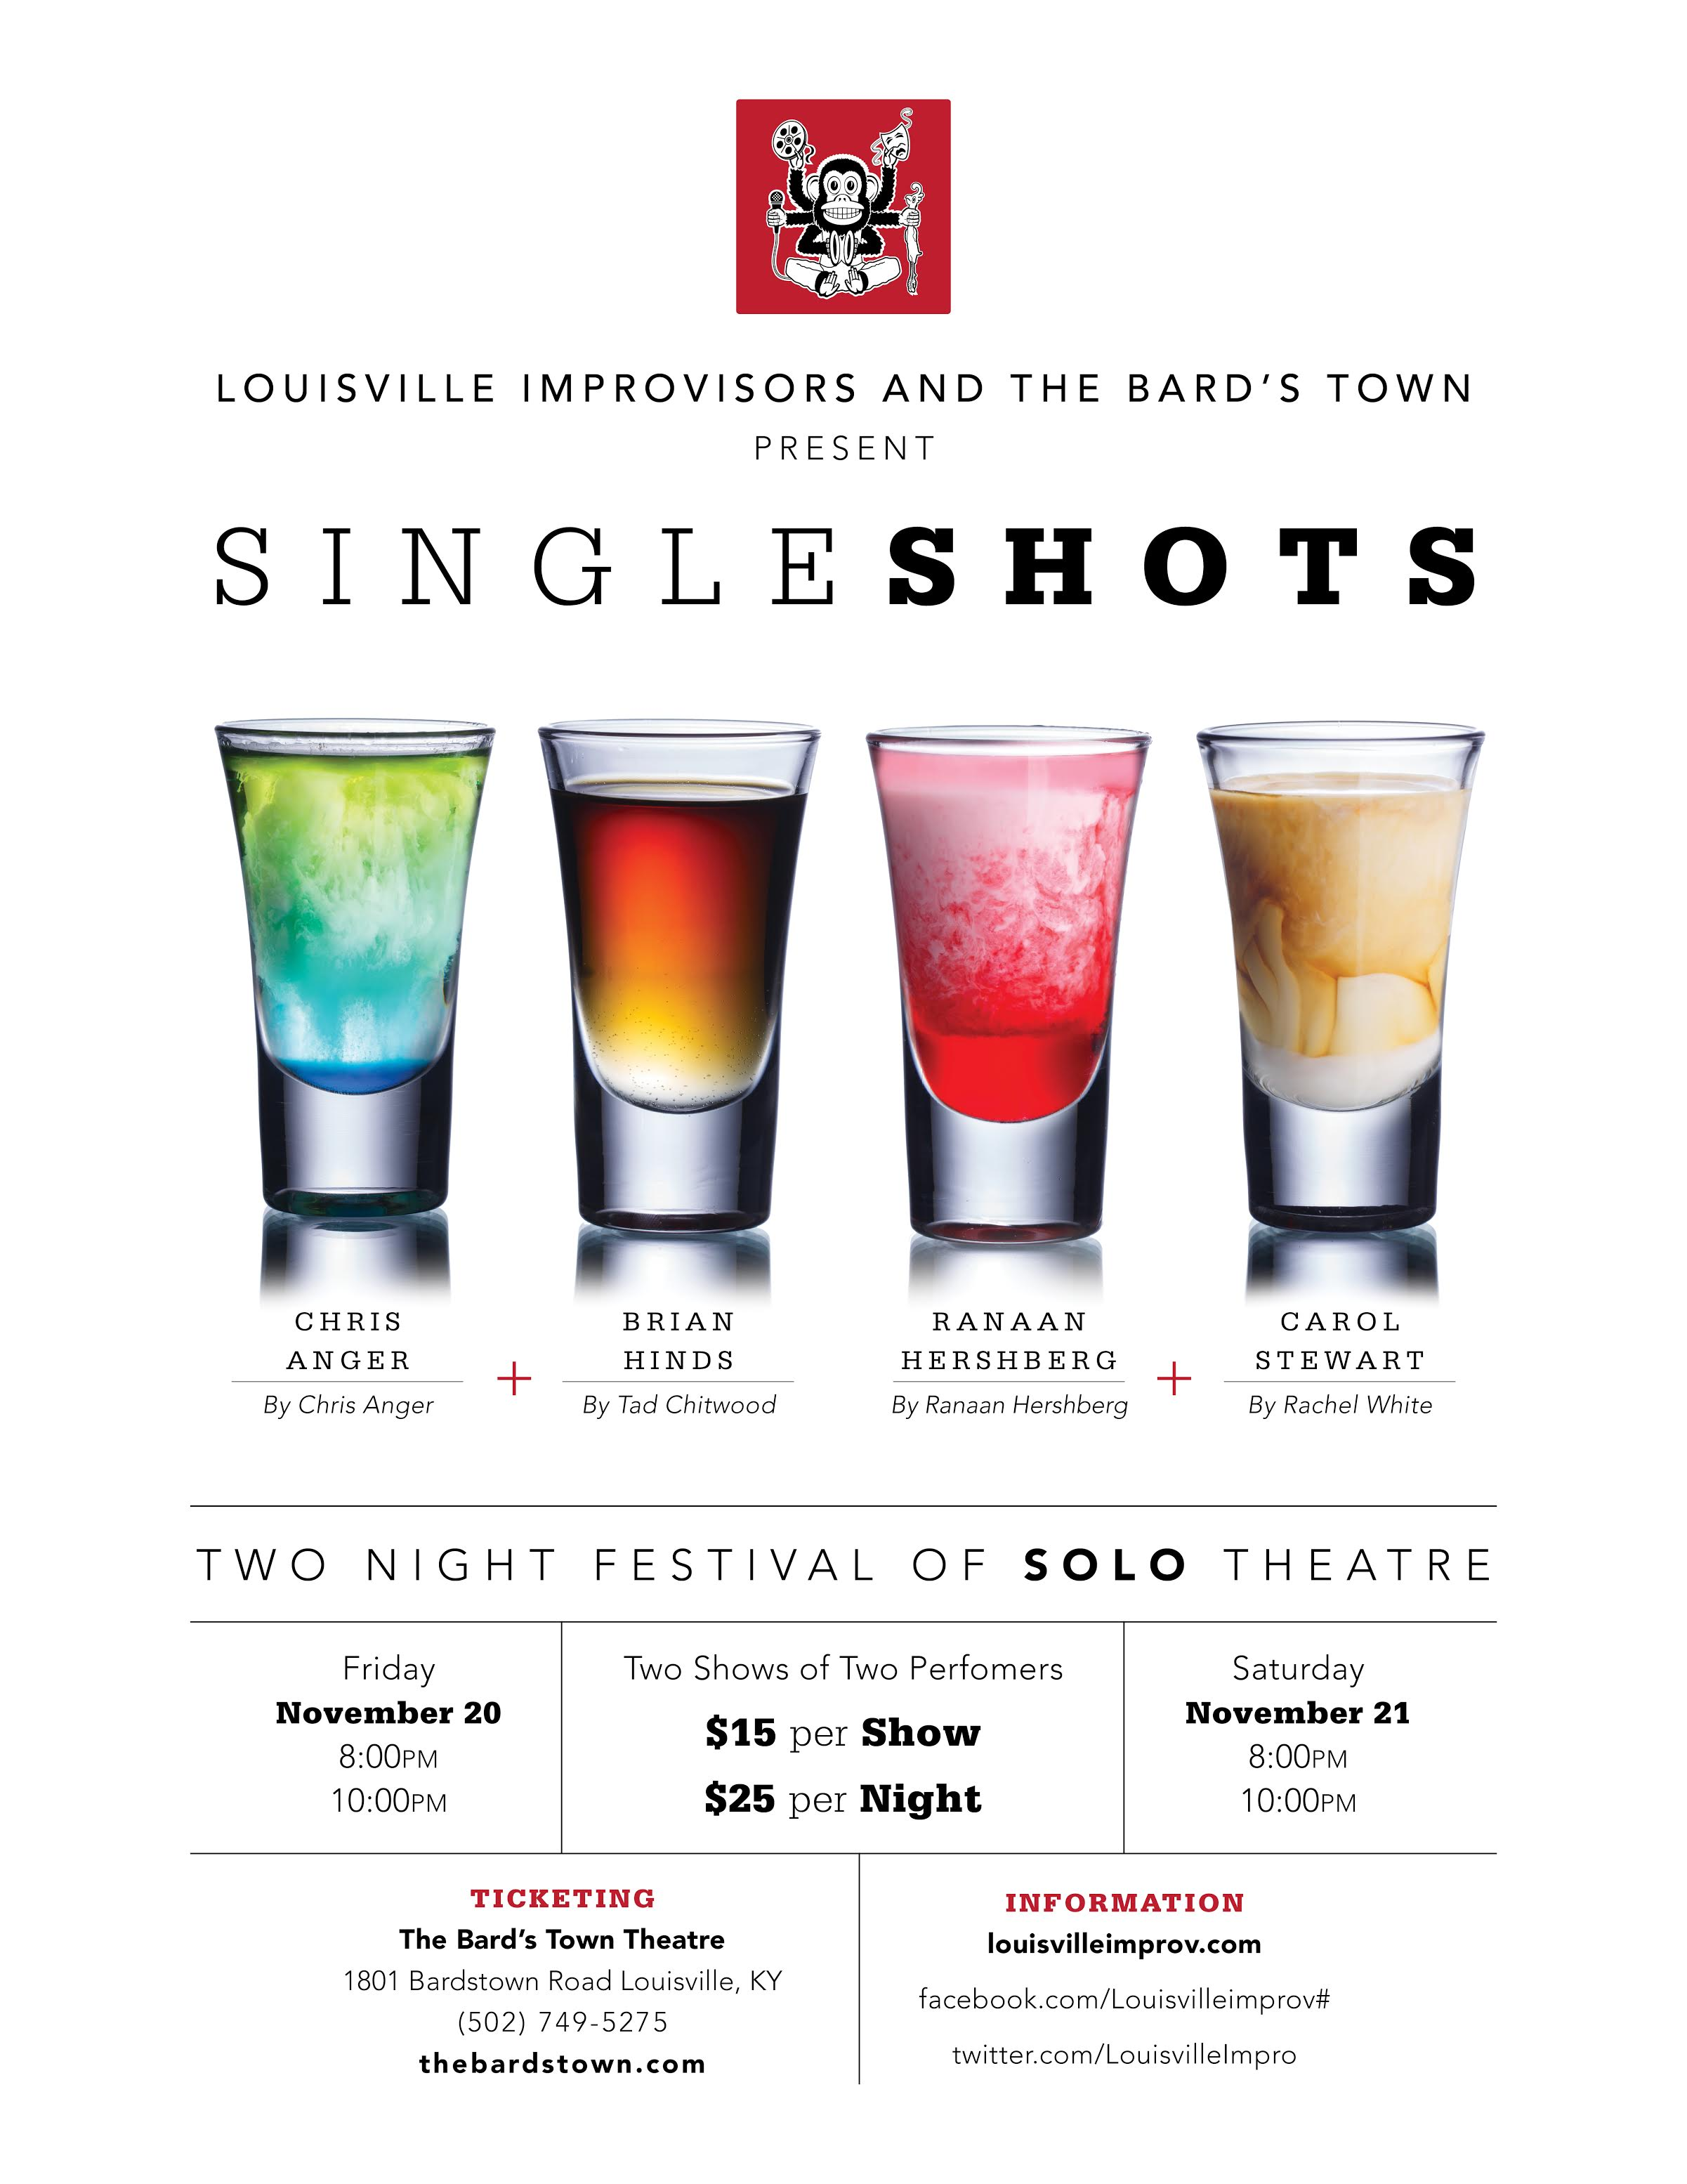 Louisville improvisors and The Bard's Town present Single Shots. Two night festival of solo theatre, Friday November 20th & 21st